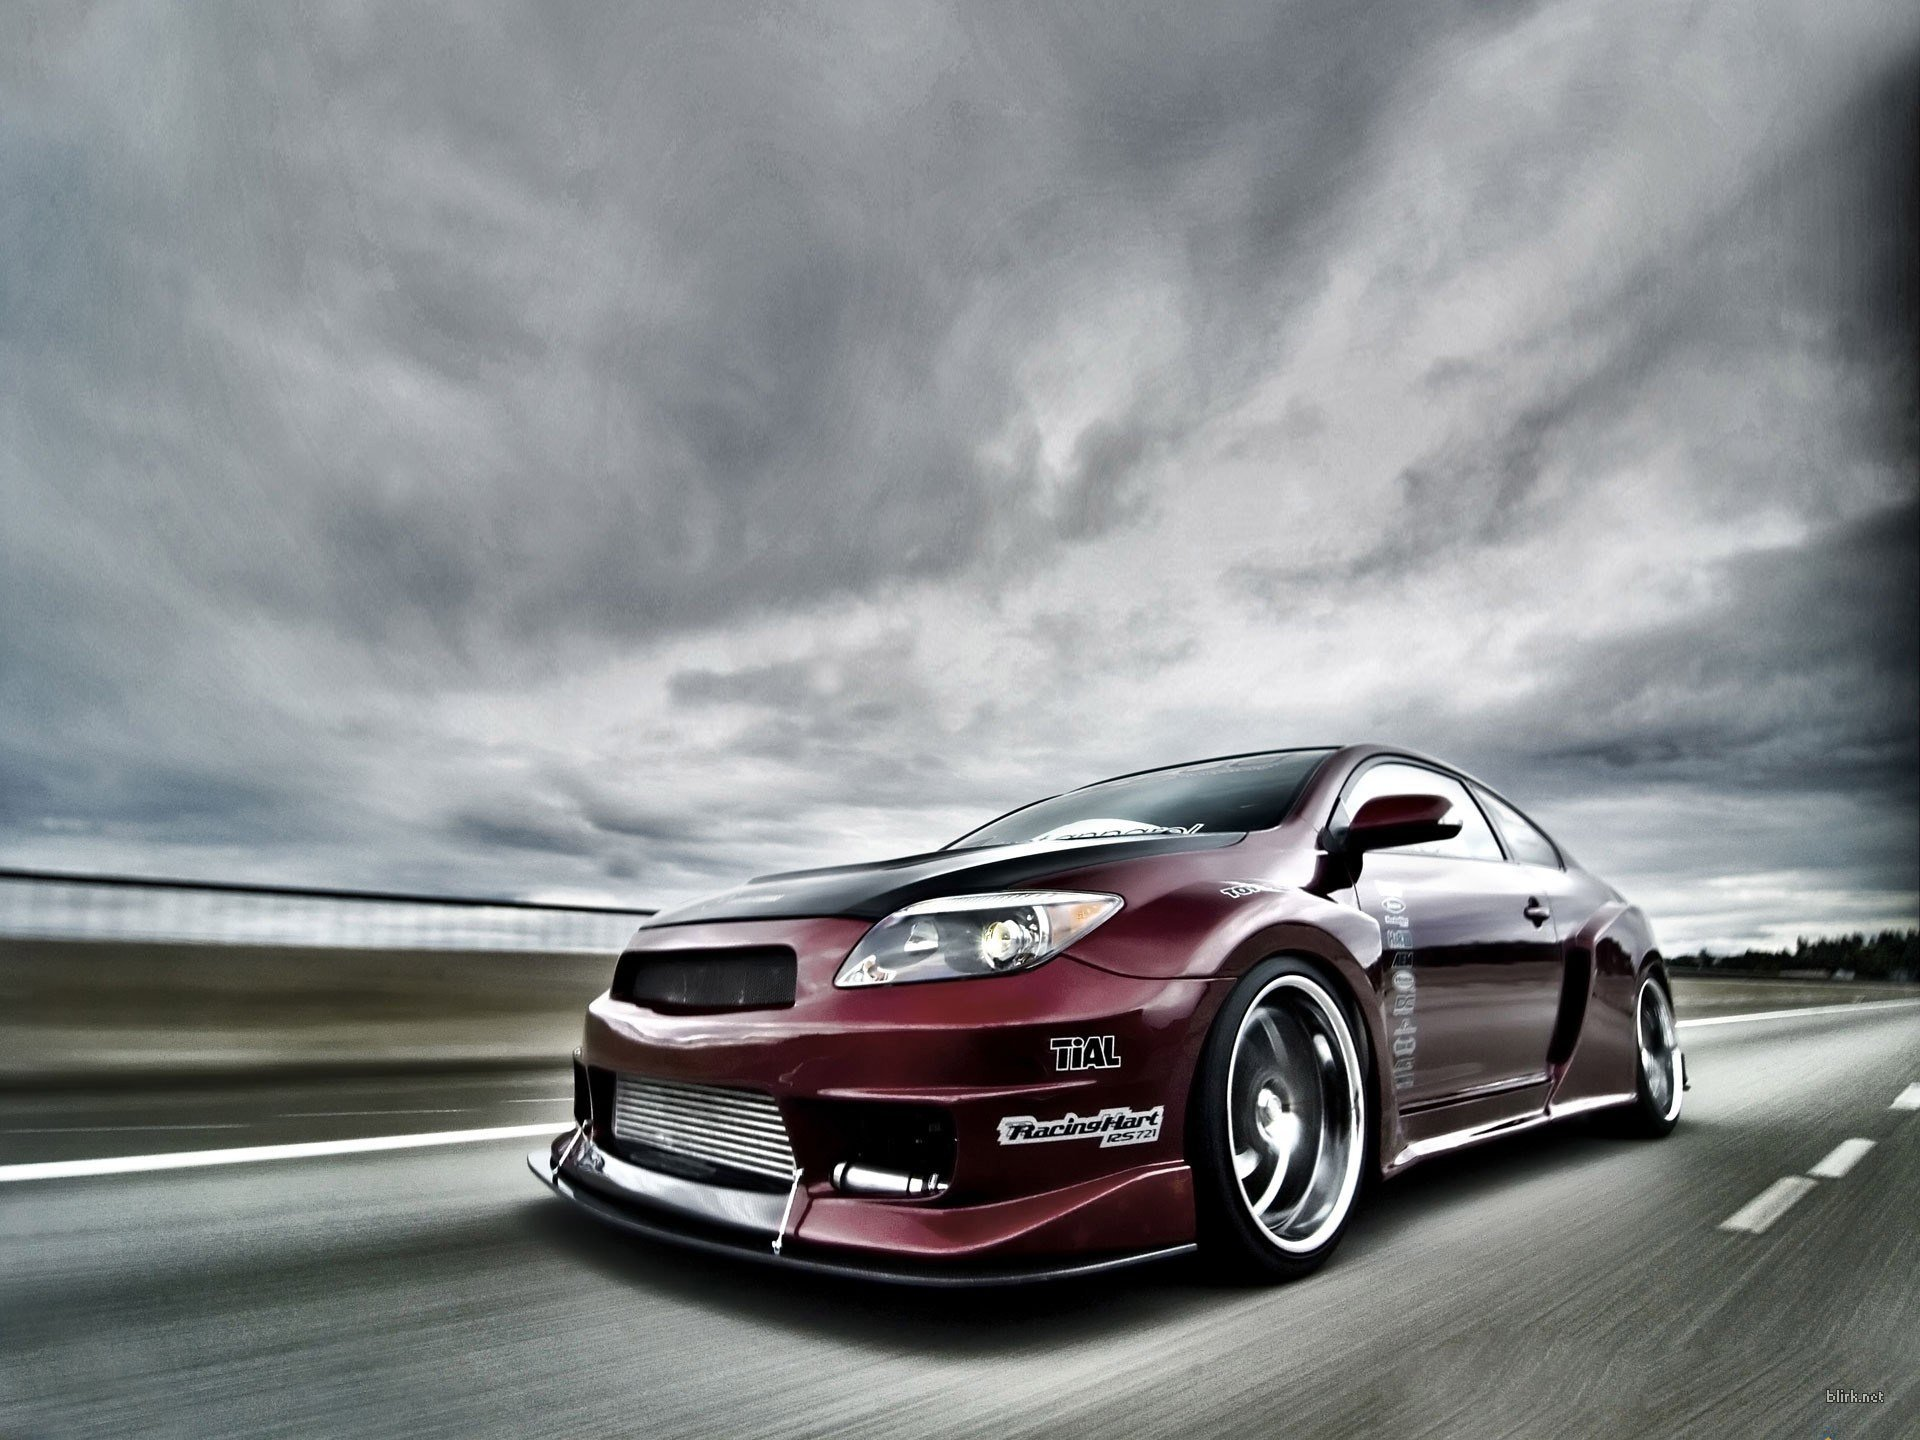 Latest Over 40 Hd Stunning Toyota Wallpaper Images For Free Download